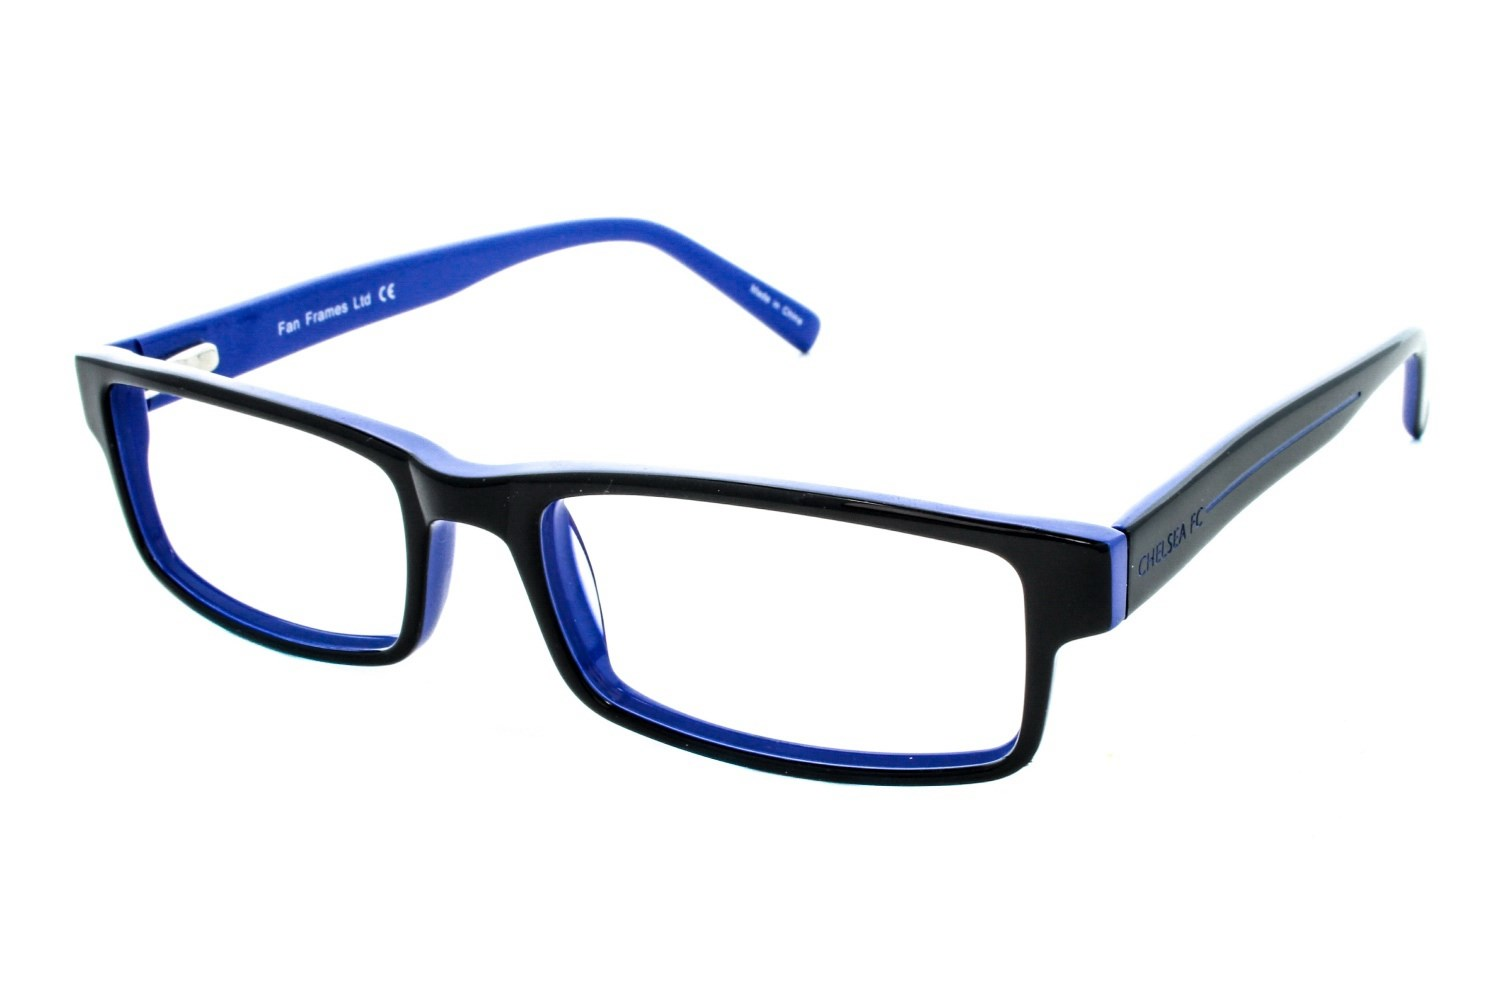 Fan Frames Chelsea FC Retro Prescription Eyeglasses Frames